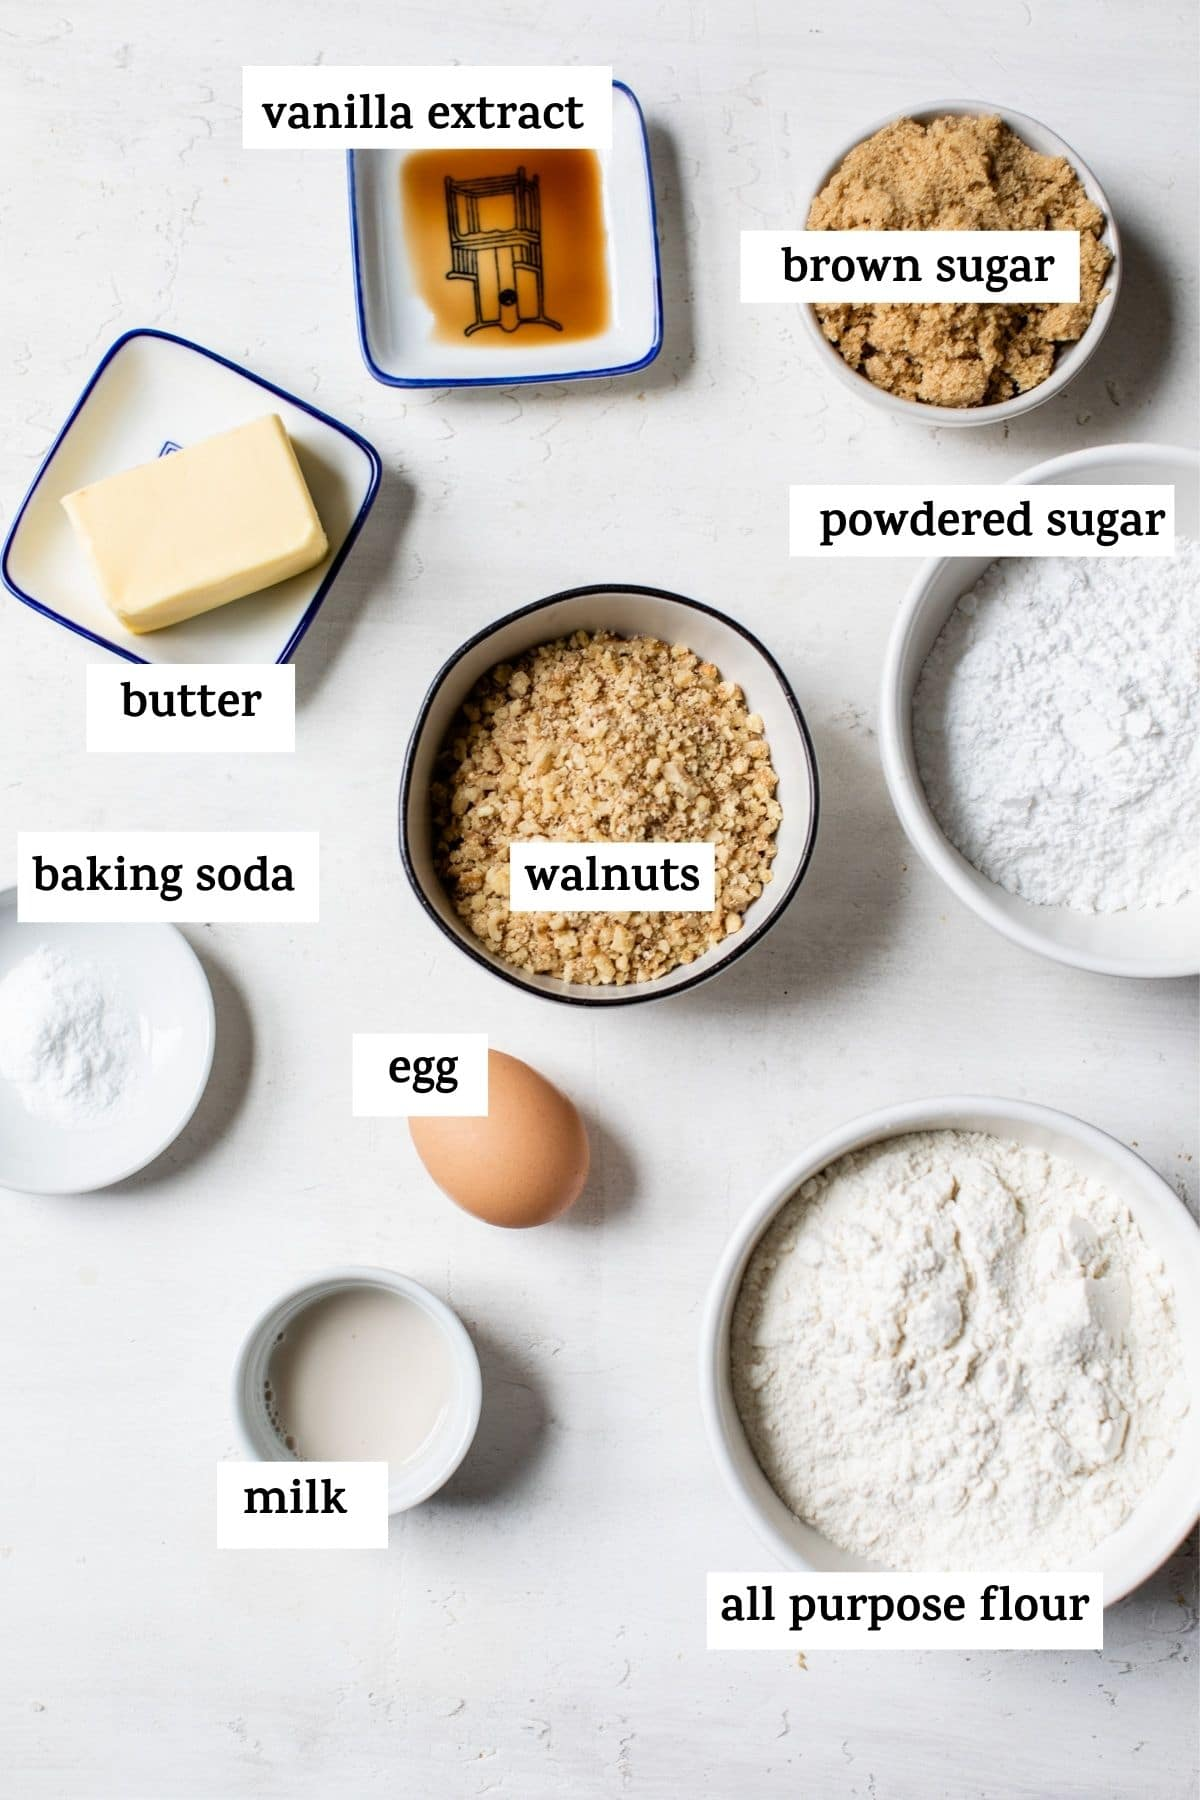 ingredients with text overlay